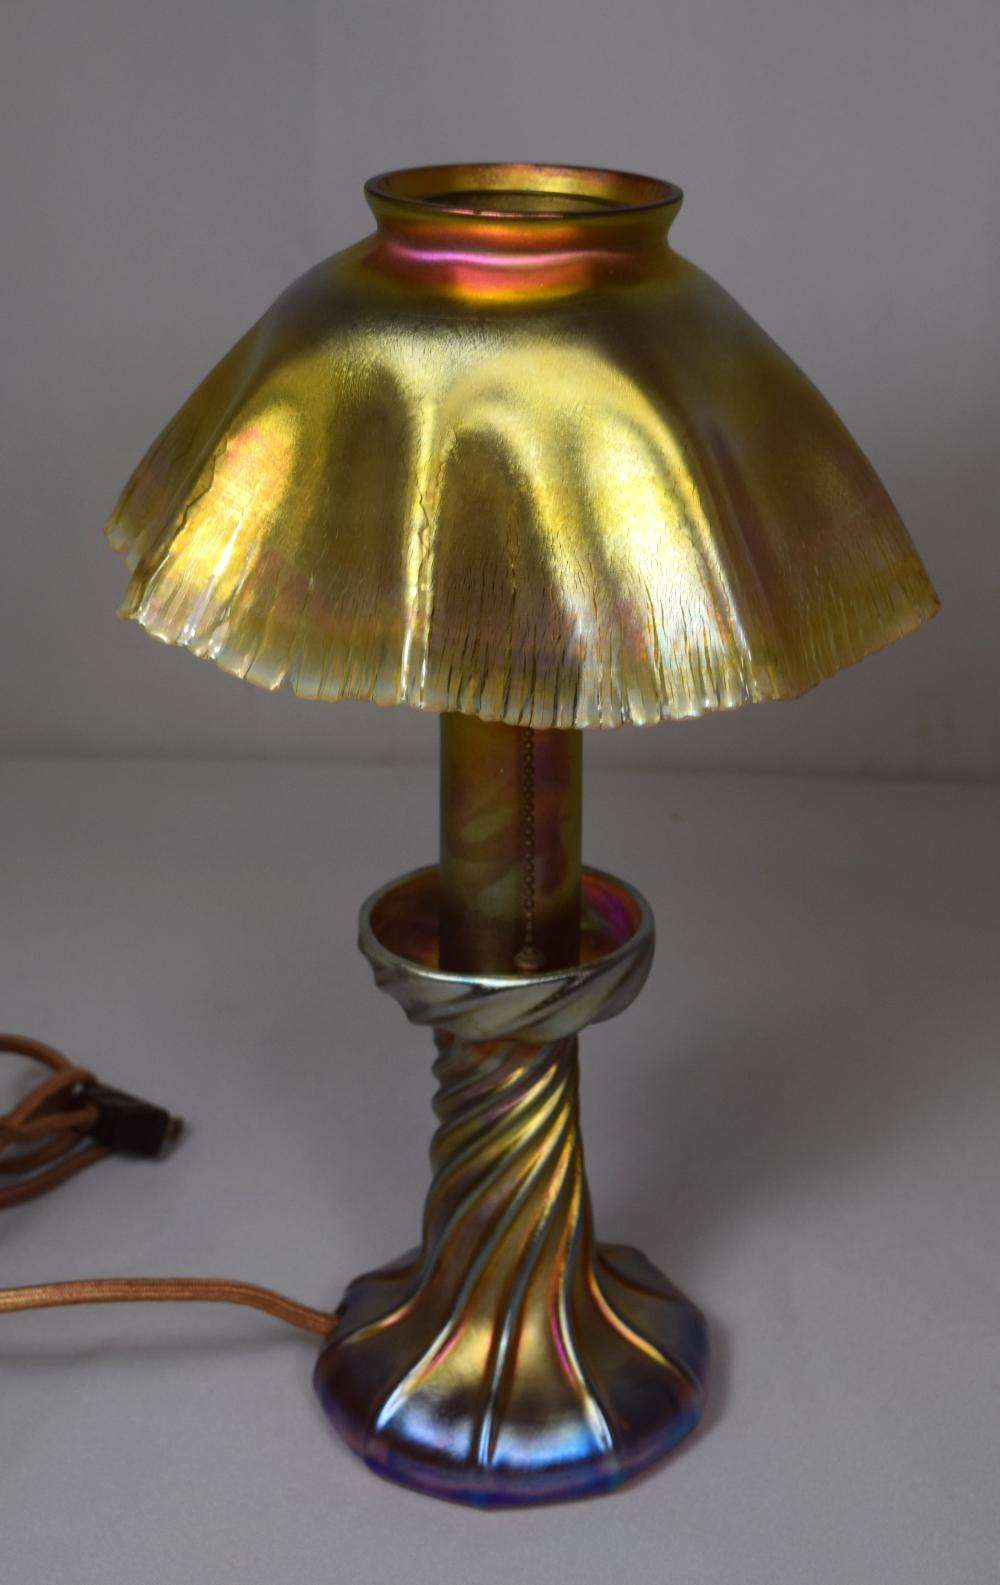 SIGNED LOUIS COMFORT TIFFANY FAVRILE CANDLE LAMP: